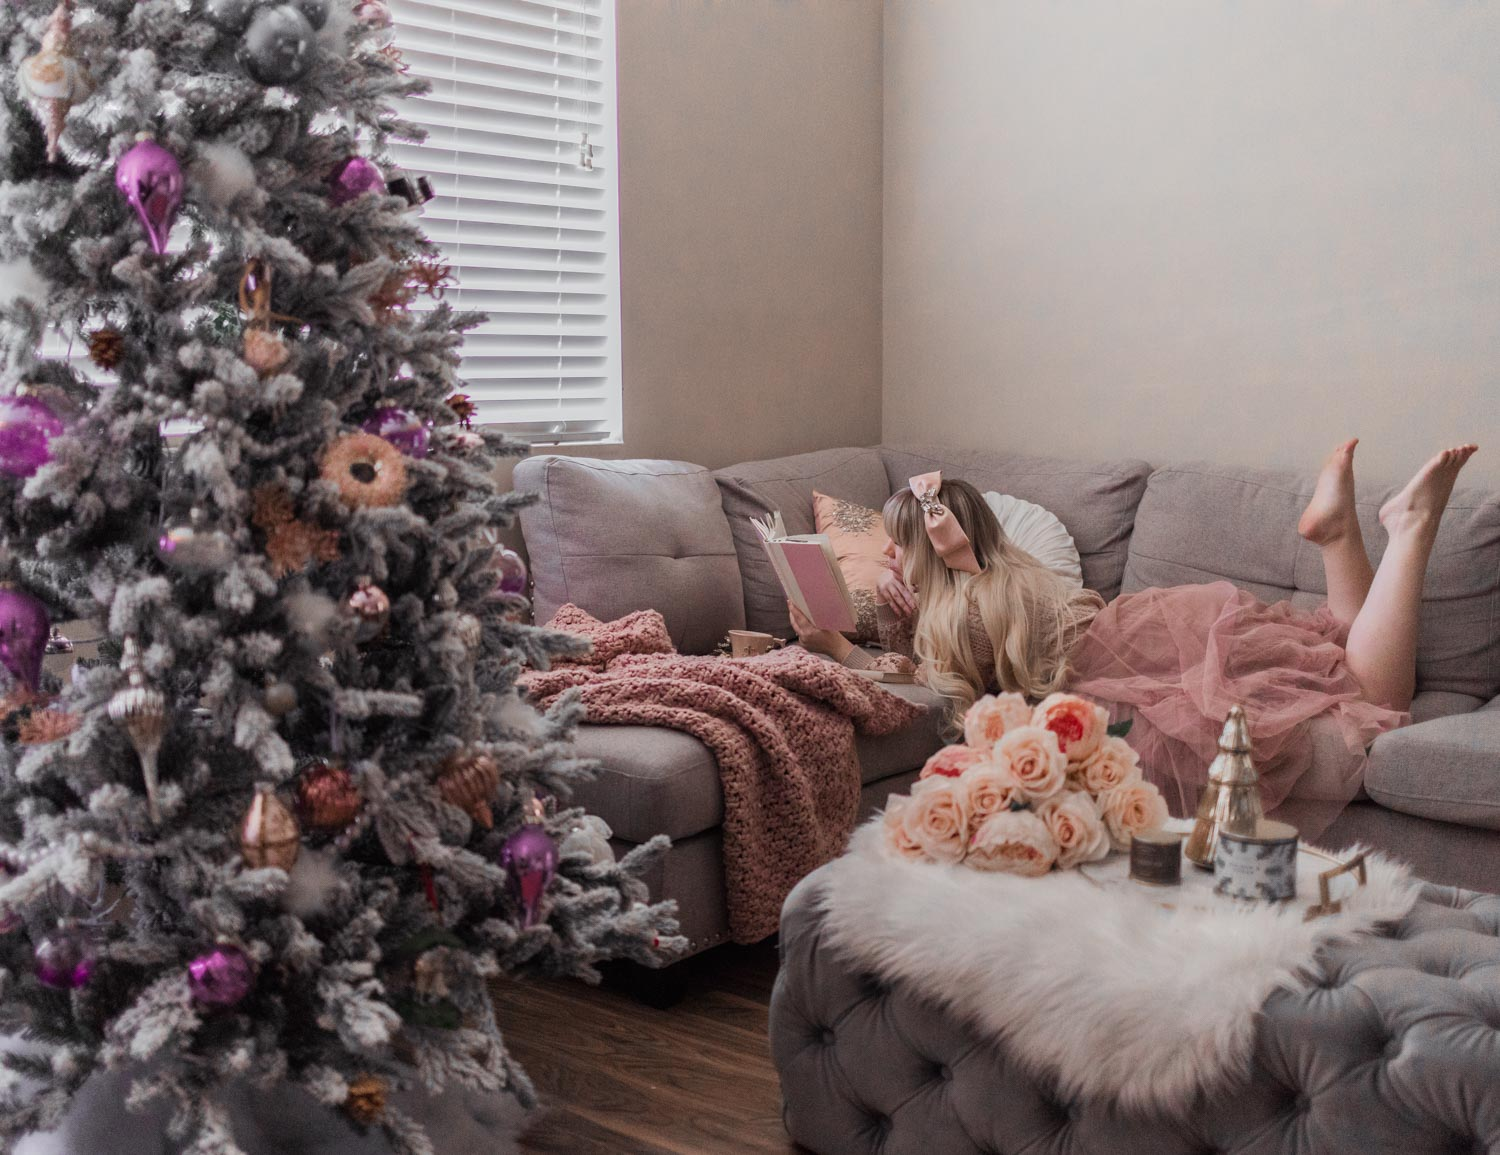 My Feminine Christmas Decor & King of Christmas Review